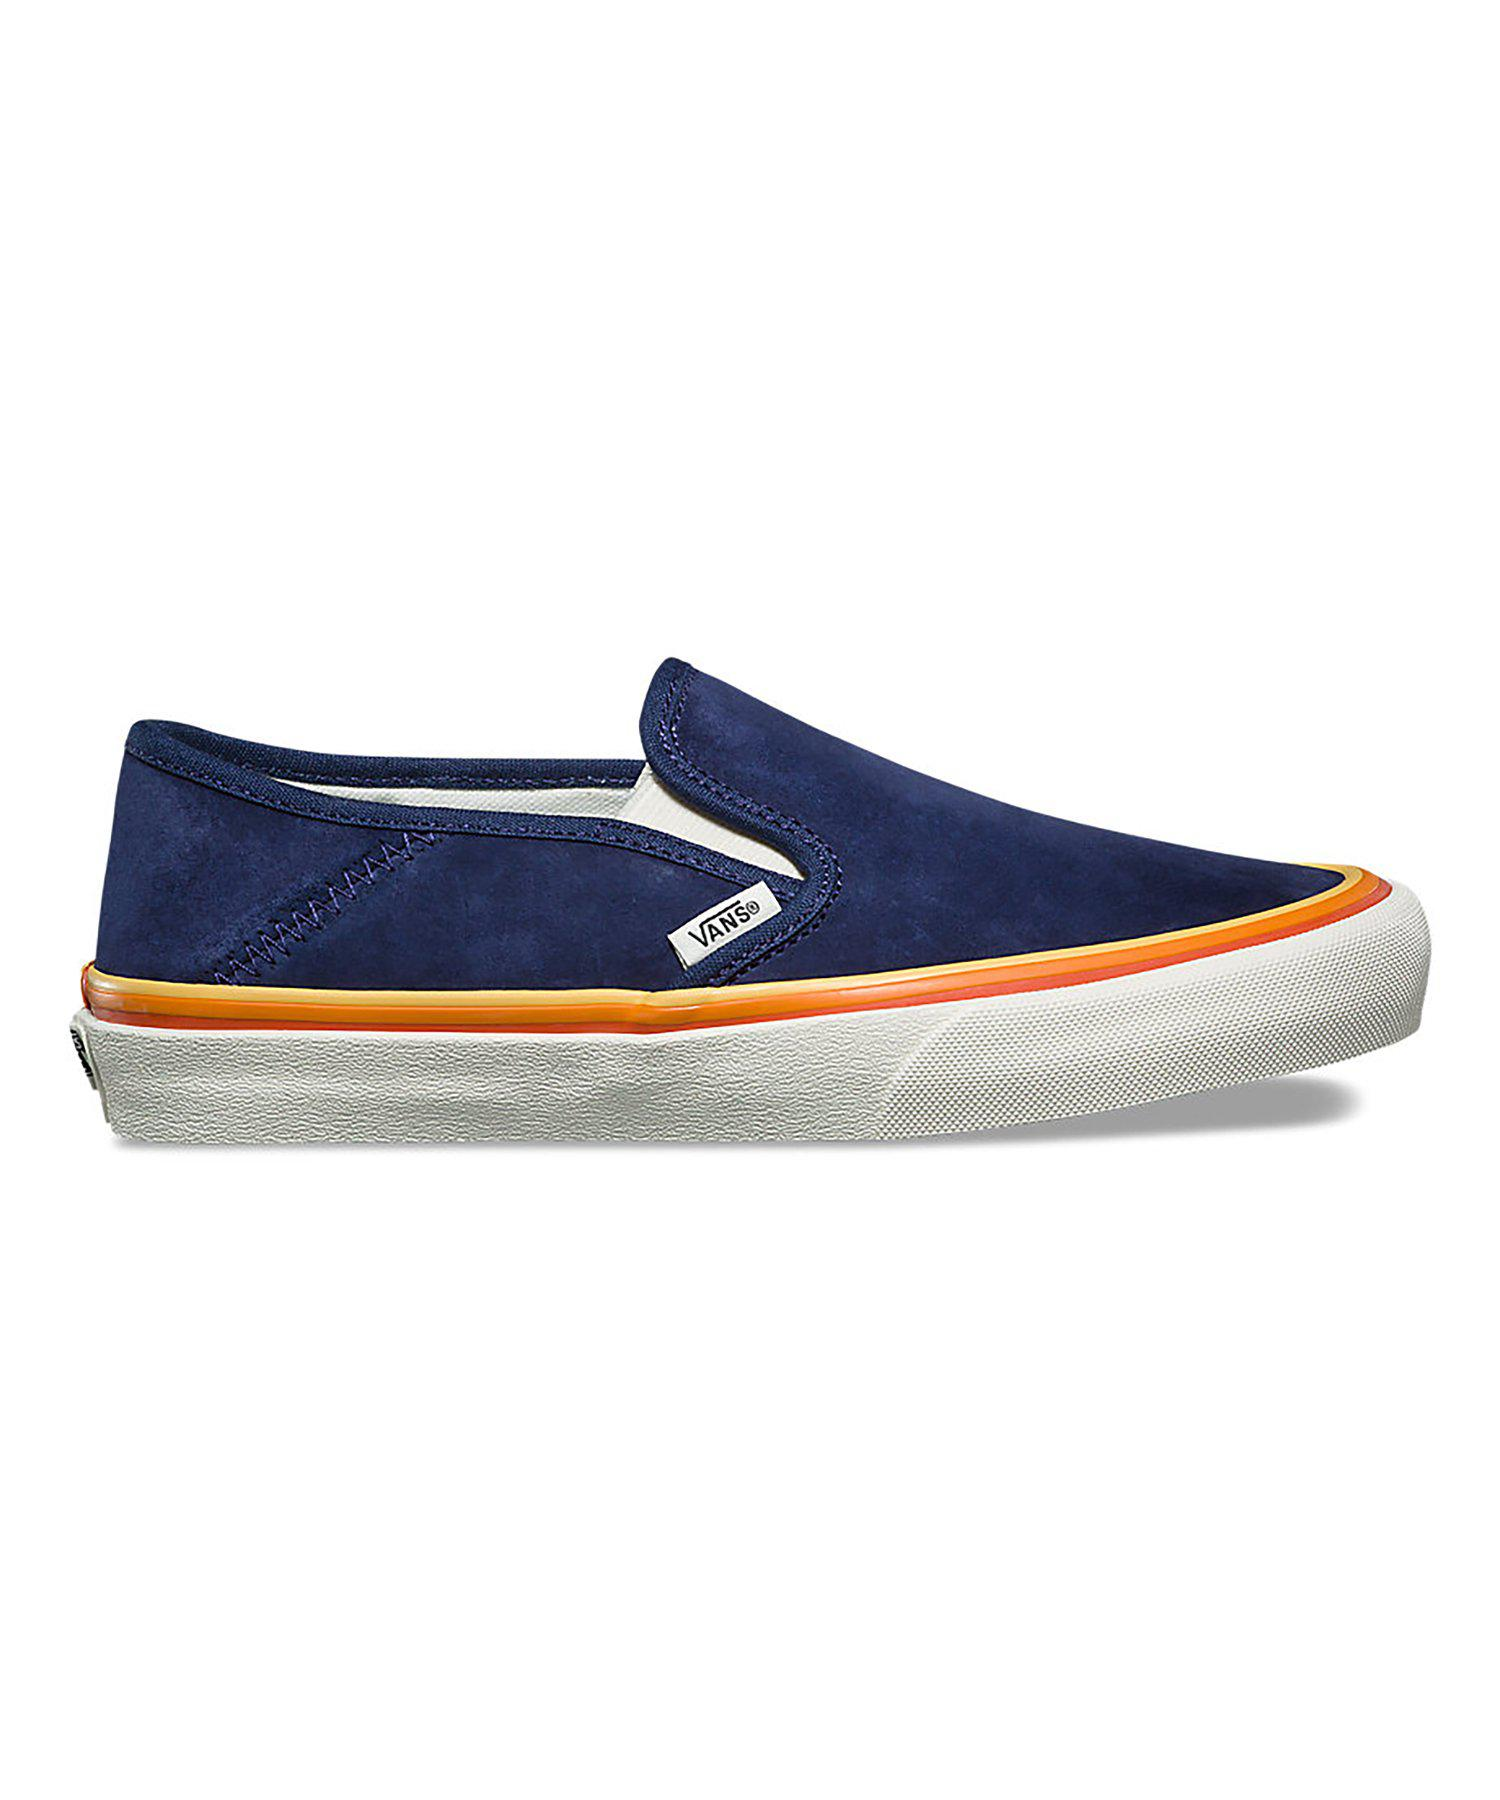 de0256d3a4f4 Lyst - Vans Slip-on Sf In Retro Rainbow in Blue for Men